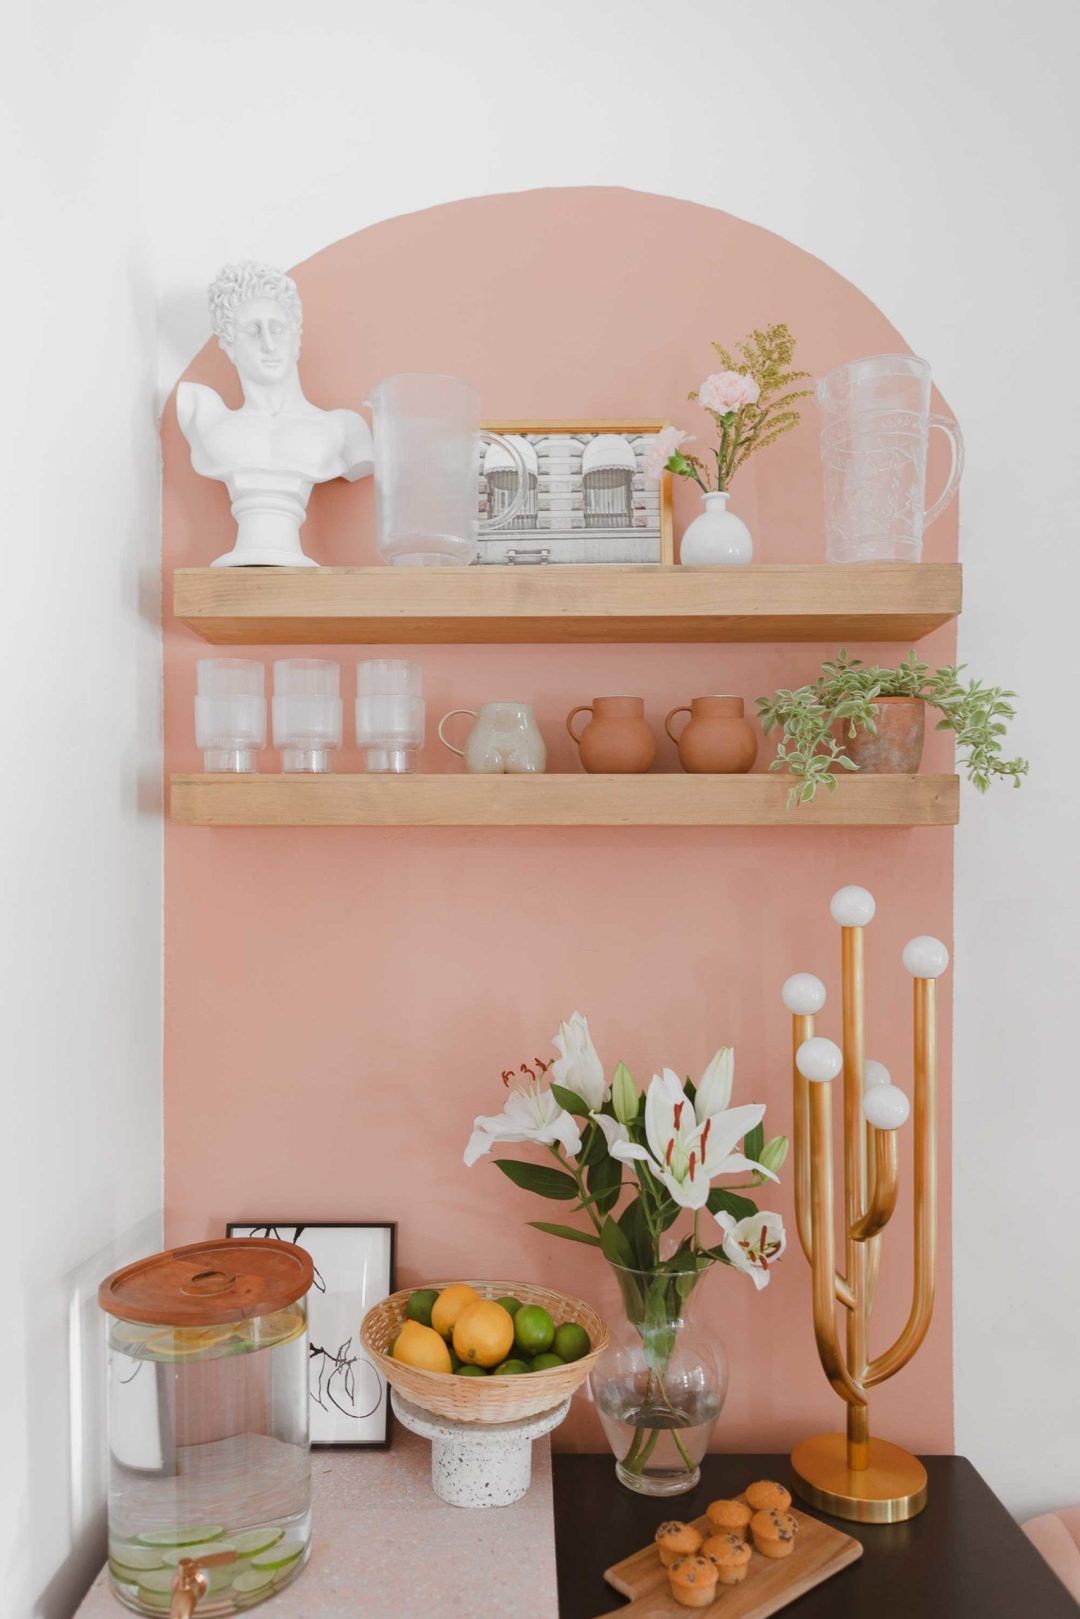 snack bar decor idea for your home